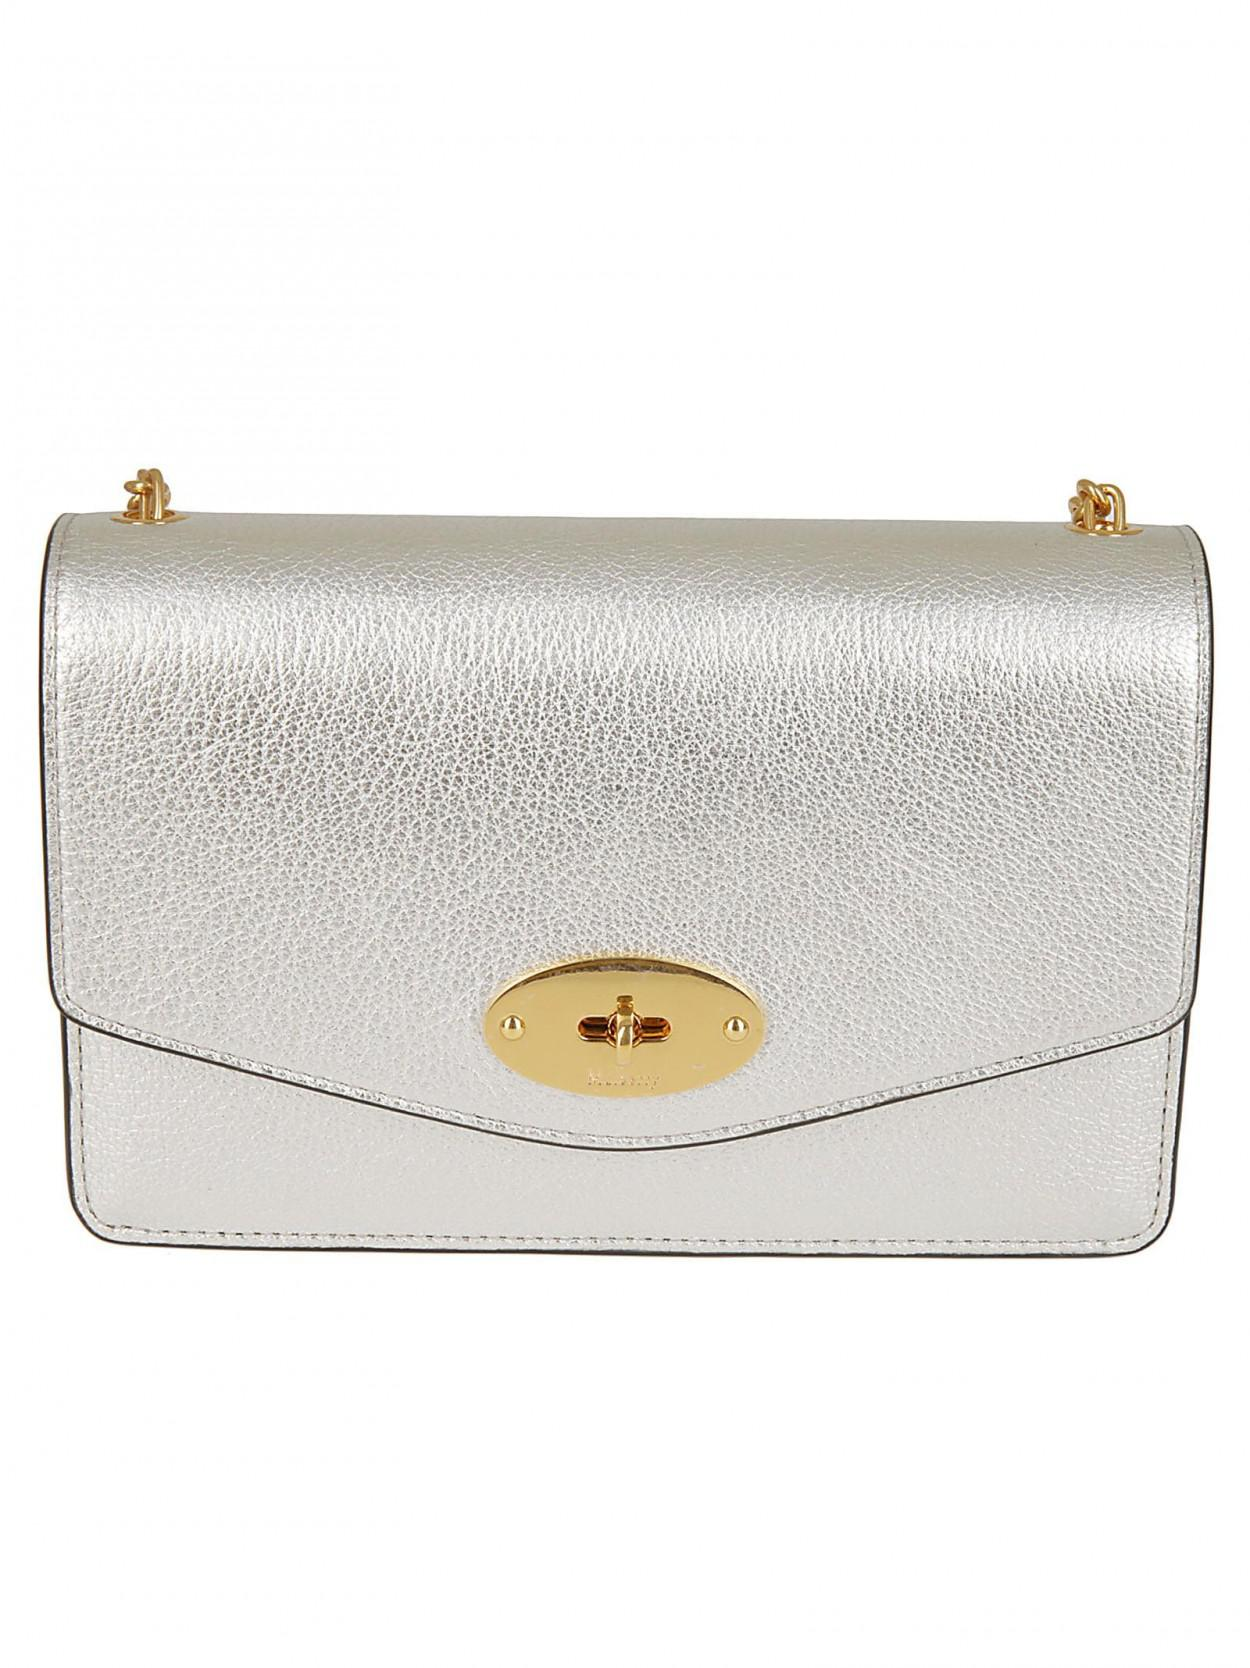 d82259956e32 Mulberry MULBERRY Borsa darley argento in Metallic - Lyst